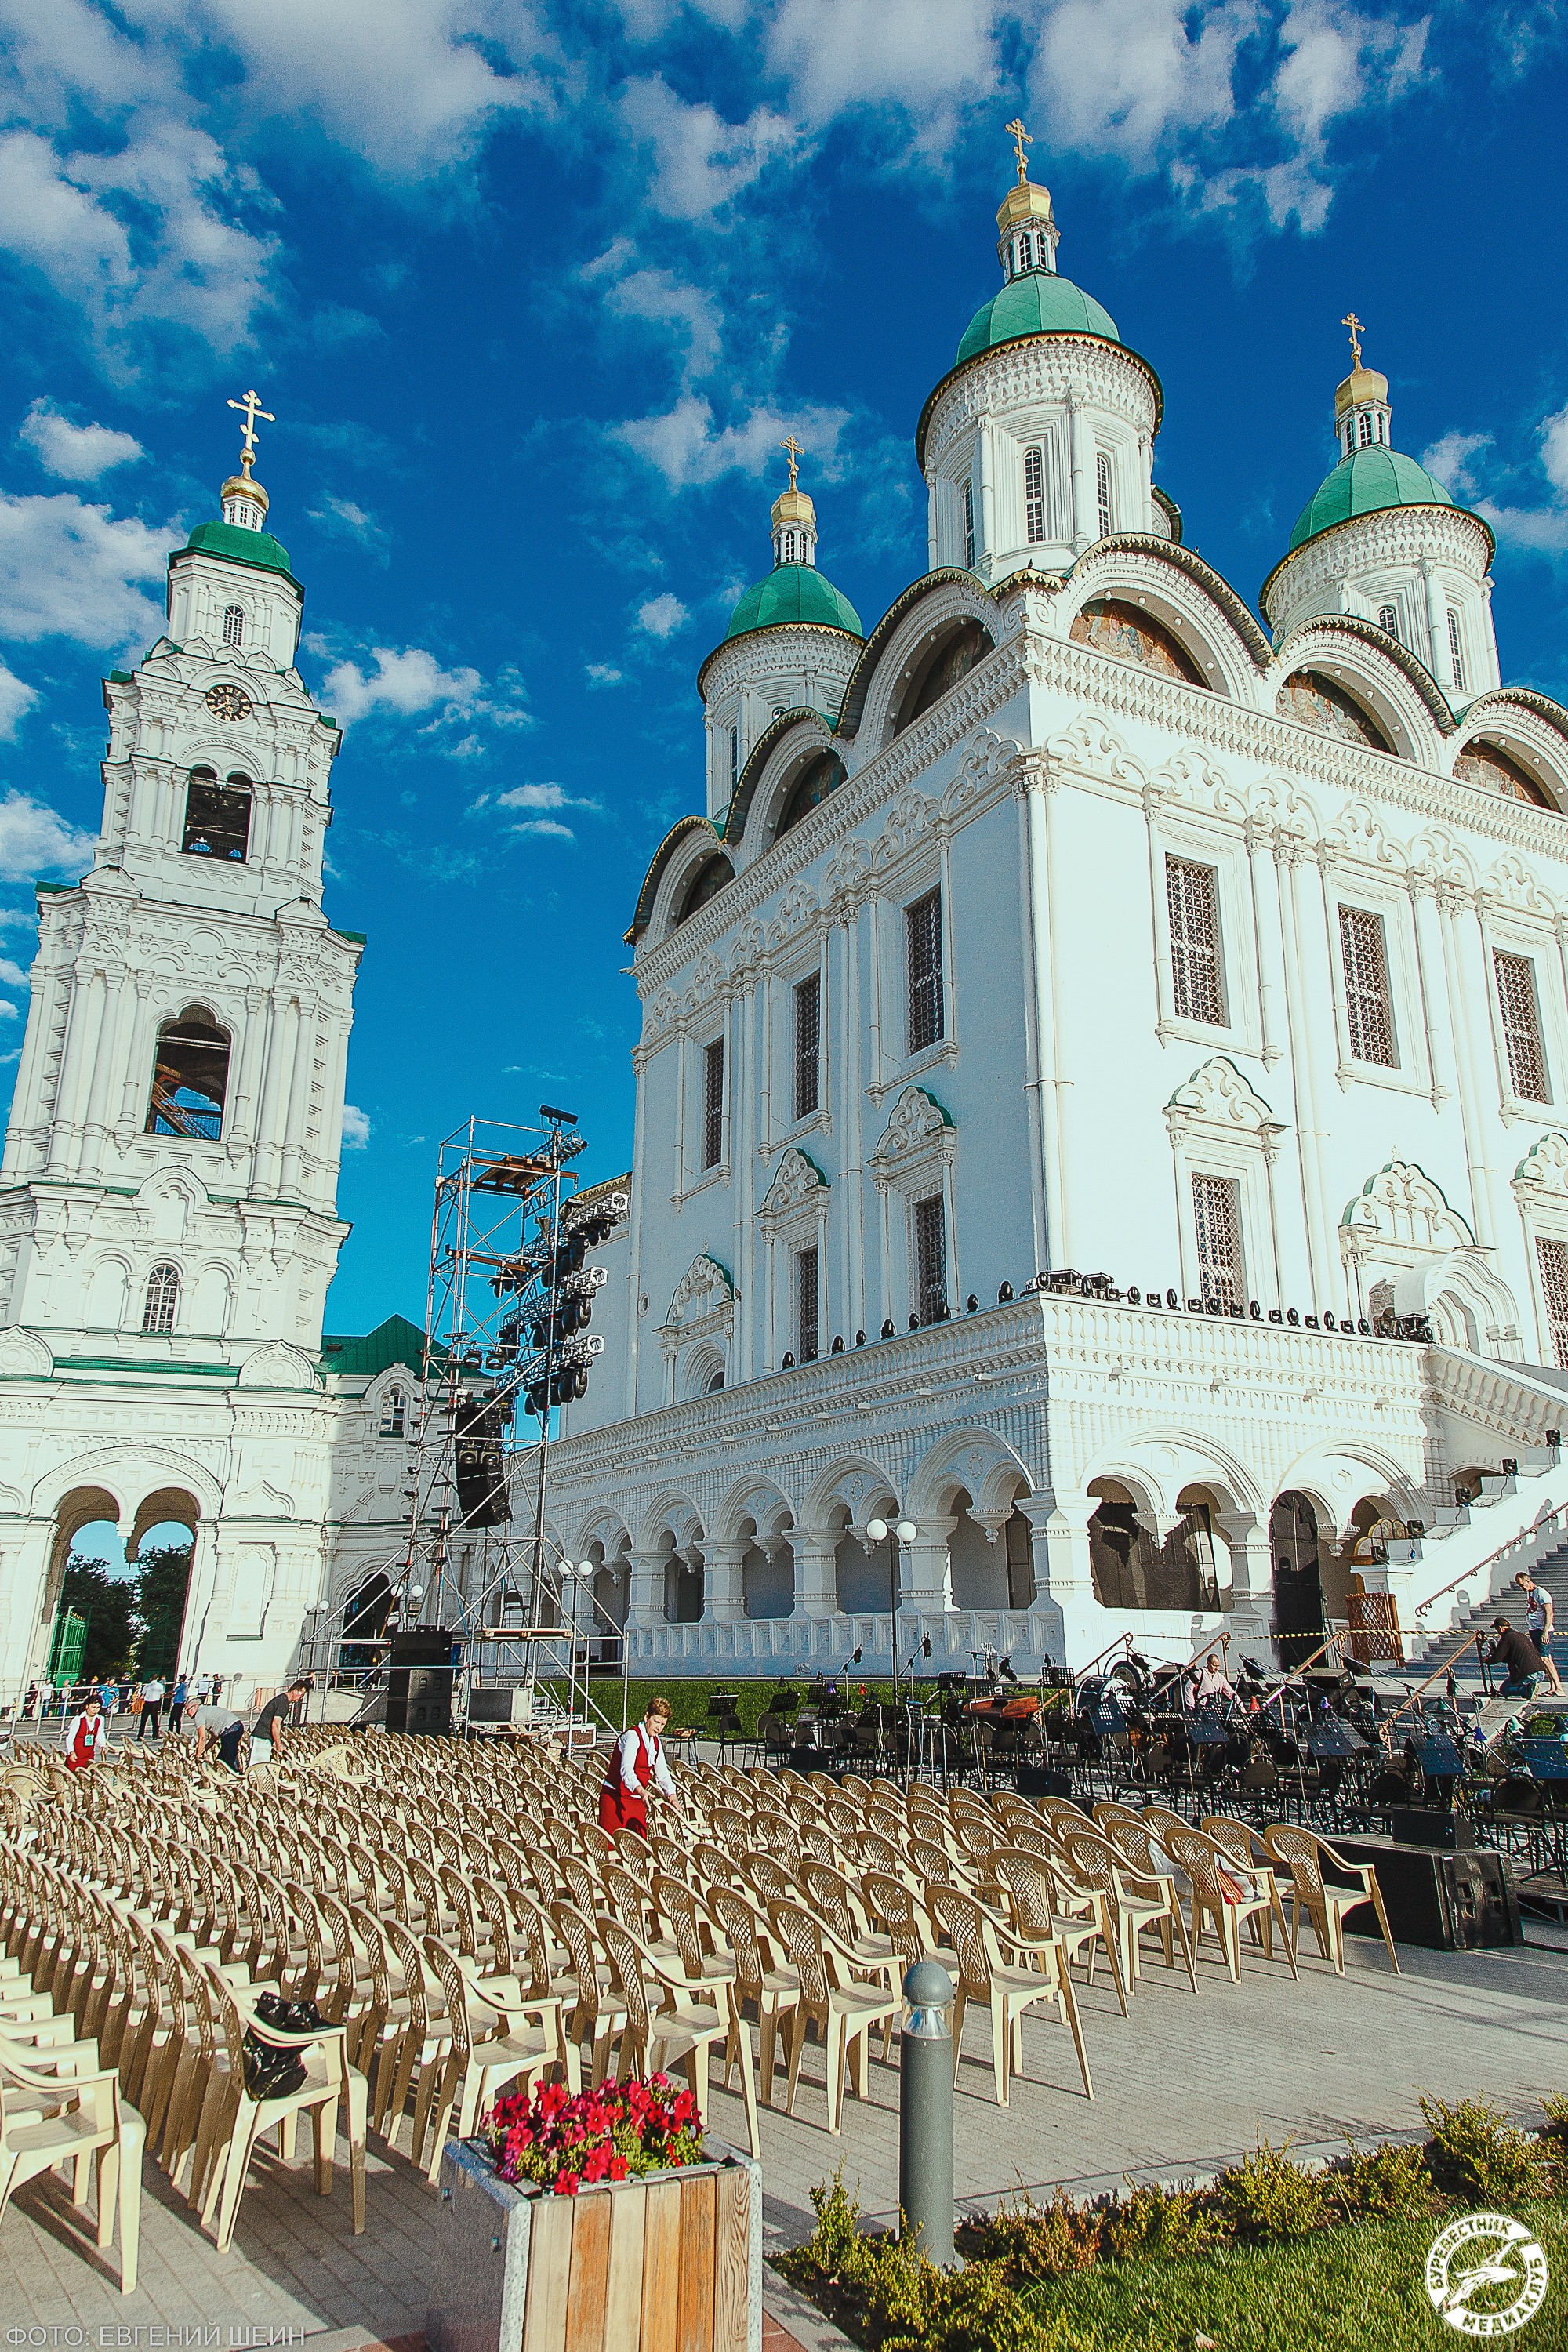 Astrakhan will face an unforgettable event in the upcoming 24th theater season –  a large-scale production in the Kremlin